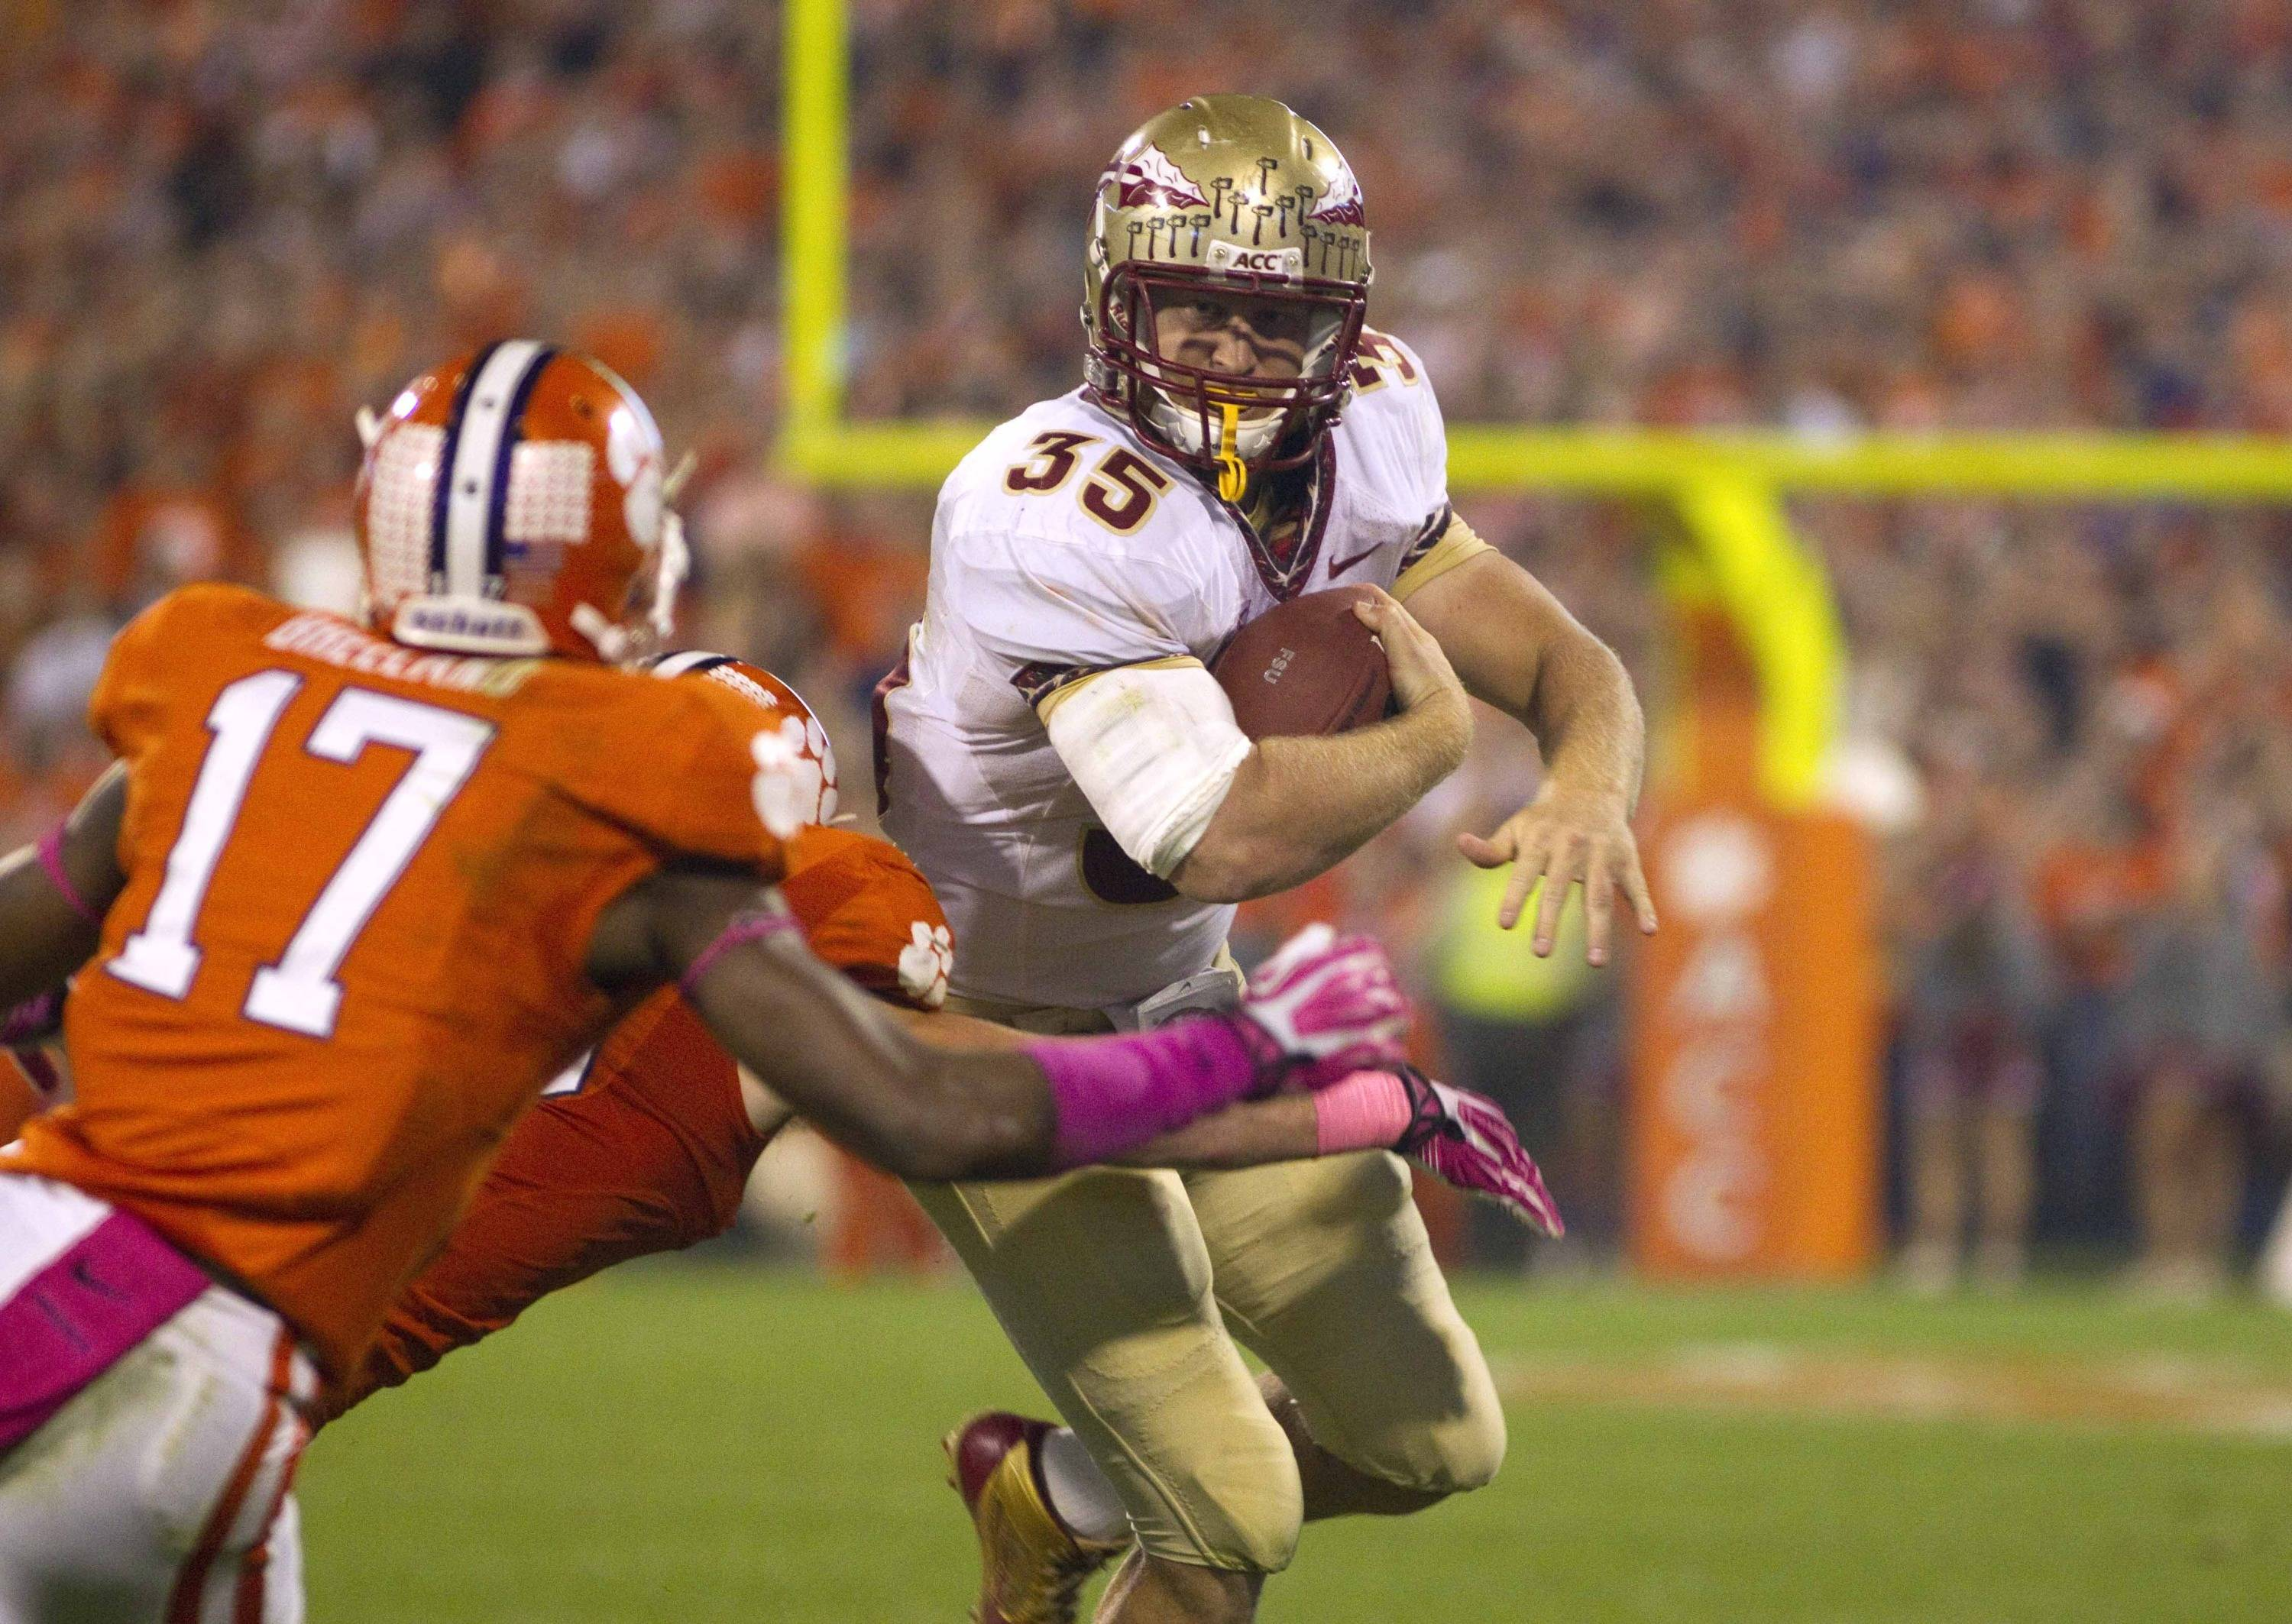 Florida State Seminoles tight end Nick O'Leary (35) carries the ball while being defended by Clemson Tigers defensive back Bashaud Breeland (17) during the first half at Clemson Memorial Stadium. (Joshua S. Kelly-USA TODAY Sports)